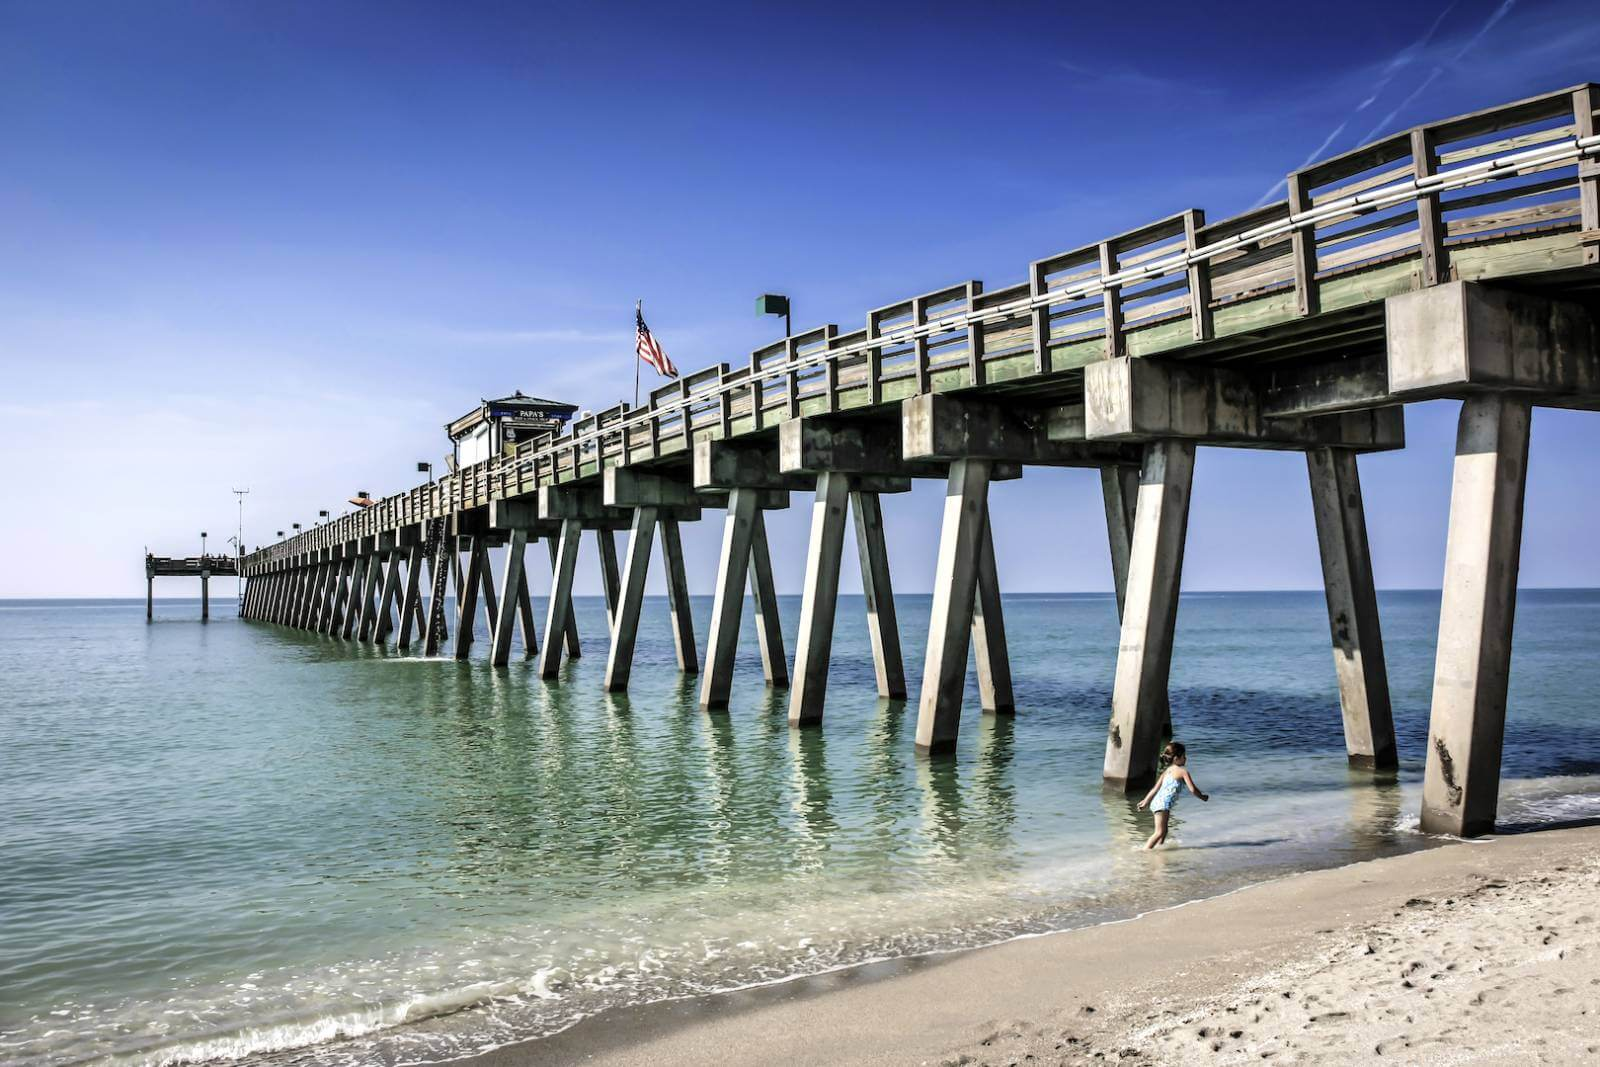 The Venice Pier is 720 feet long, 22 feet wide, and 20 feet high. It stands in water up to 18 feet deep. | Photo by Chris L. Smith #VeniceFlorida